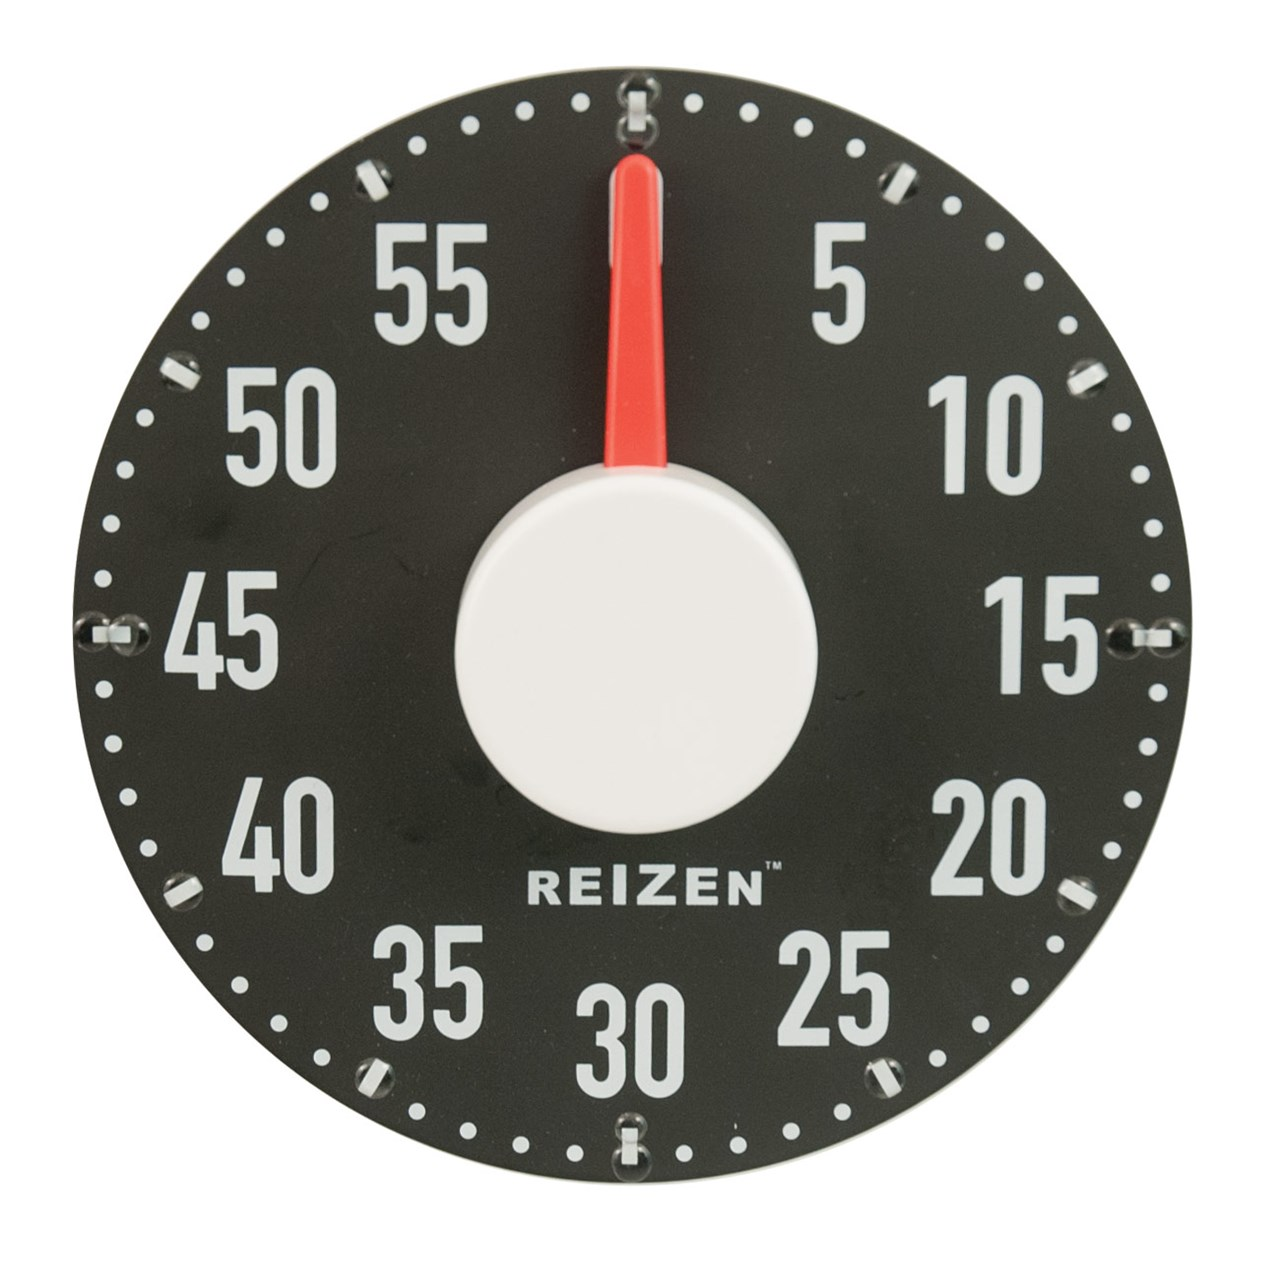 Maxiaids Extra Large Tactile Magnetic Kitchen Timer Black With White Dial